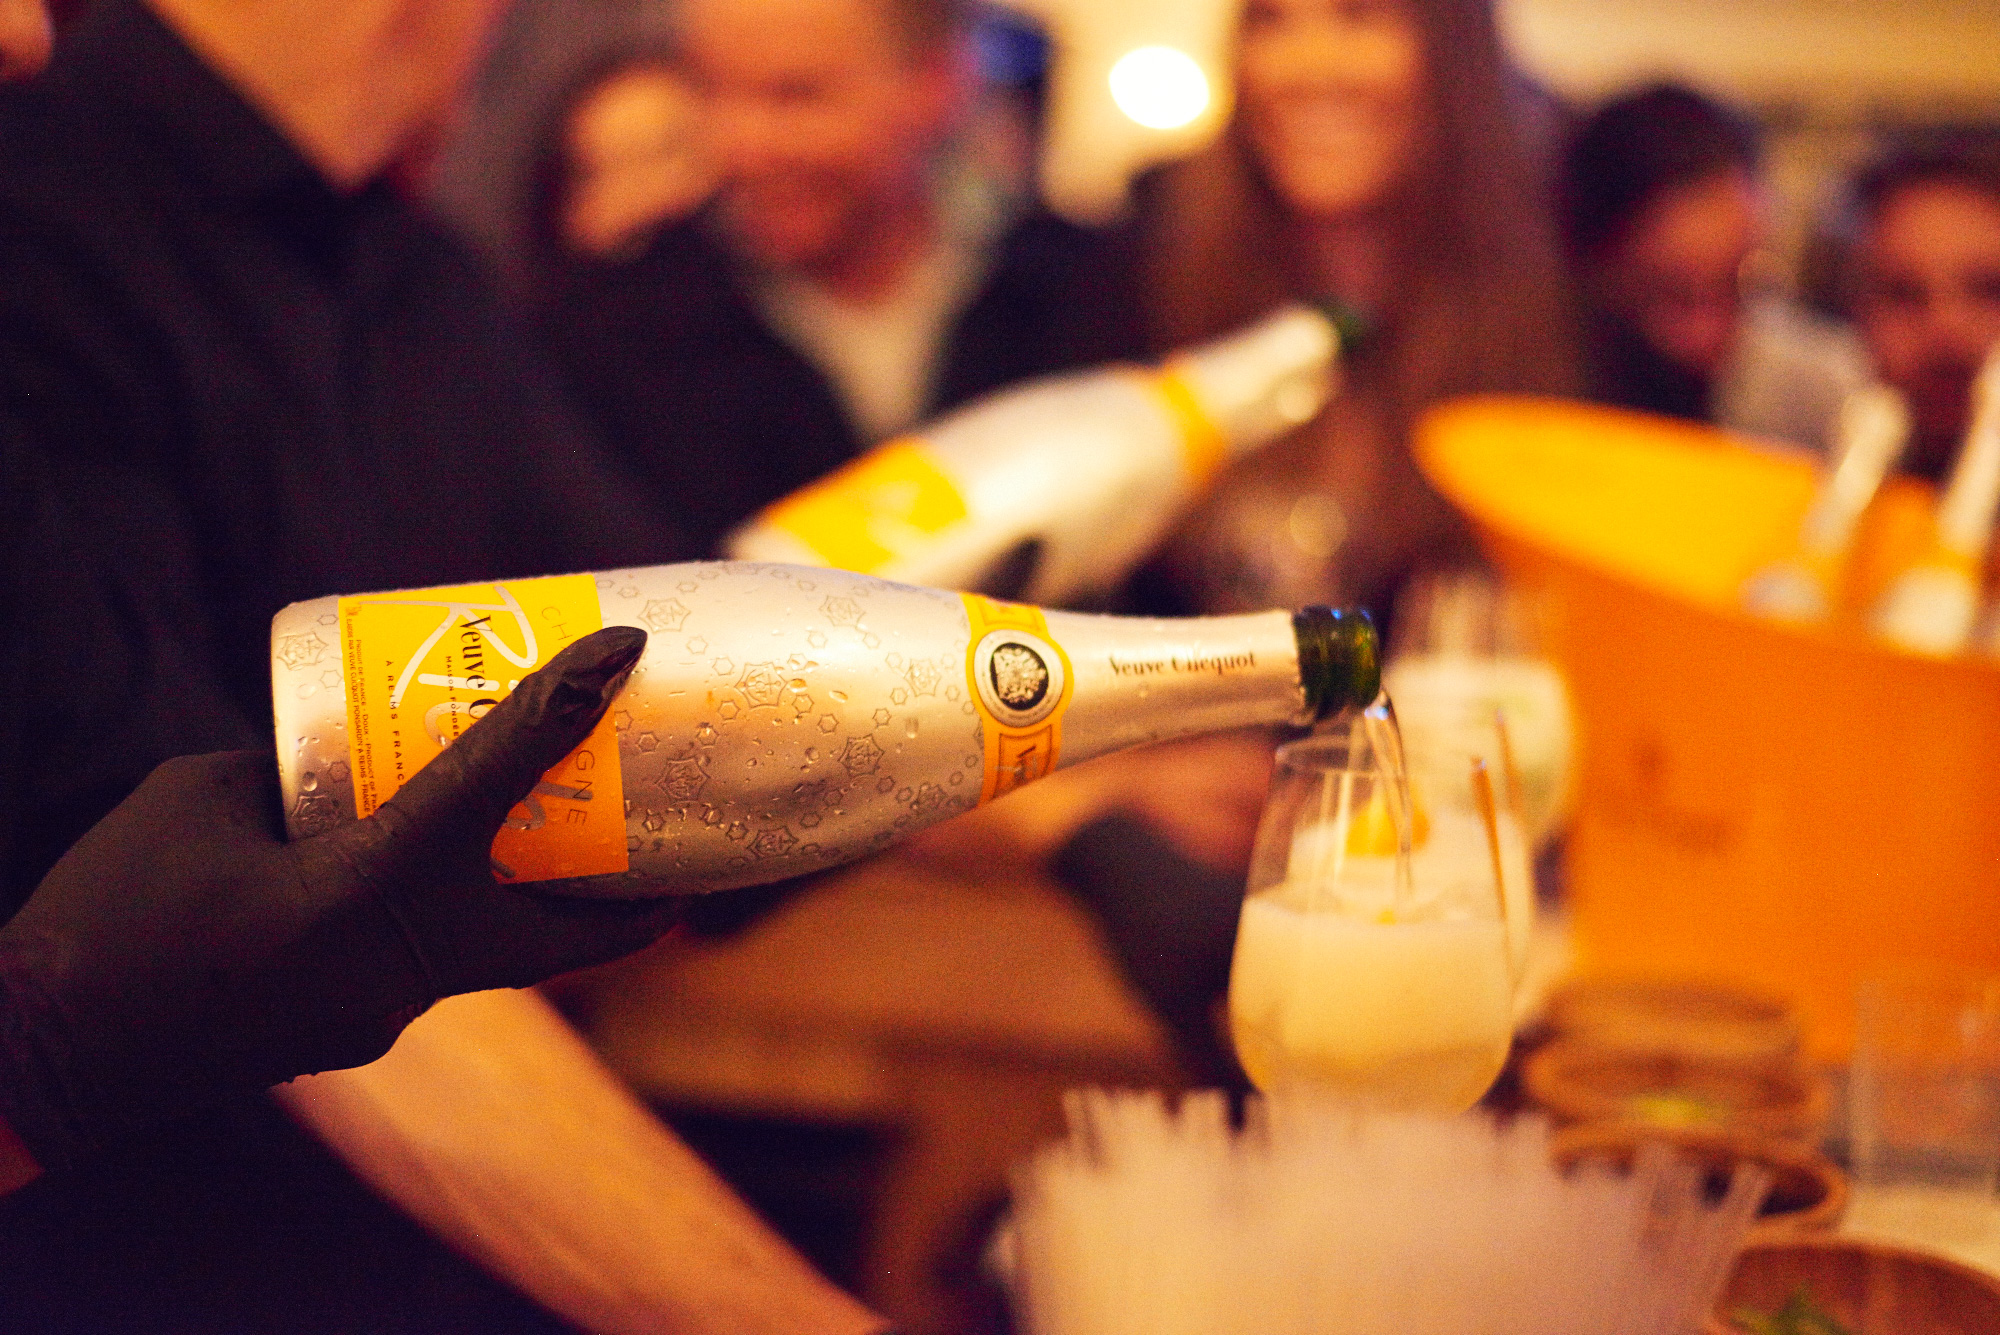 veuve-clicquot-marina-hoermanseder-after-show-party-19